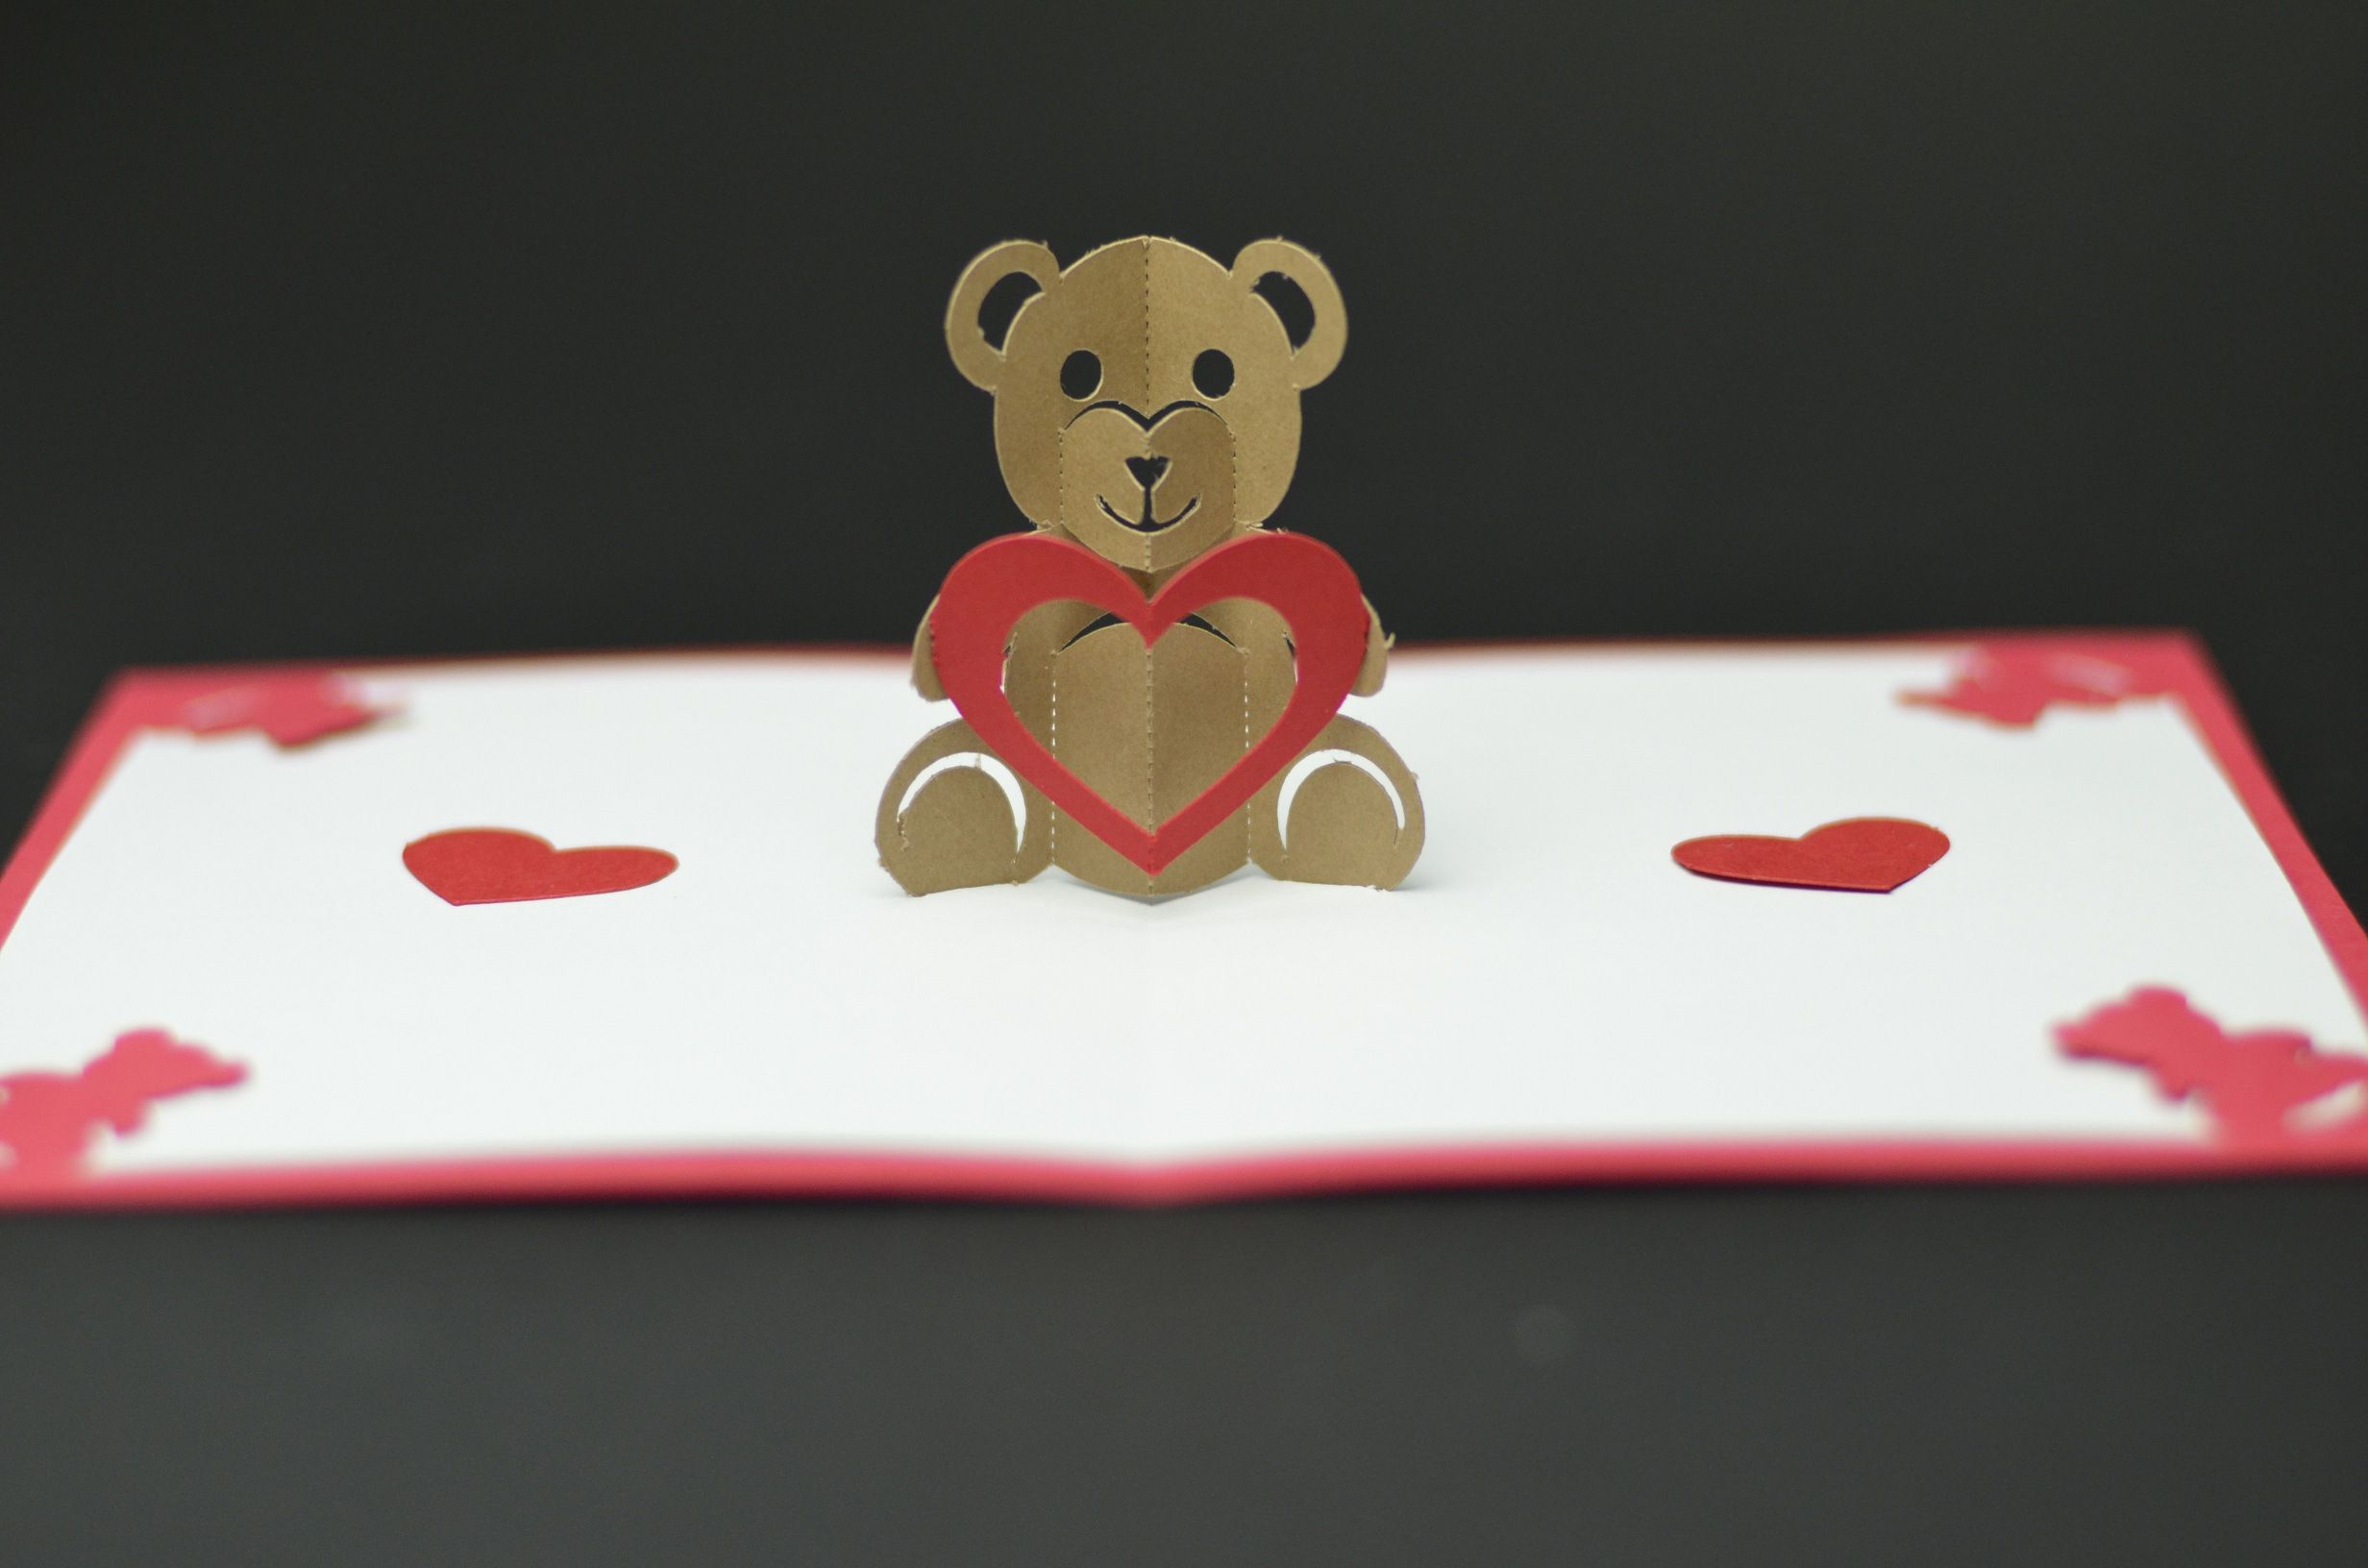 Free Valentines Day Pop Up Card Templates Teddy Bear Pop Up Card Tutorial And Template Crea Diy Pop Up Cards Pop Up Card Templates Birthday Card Template Free